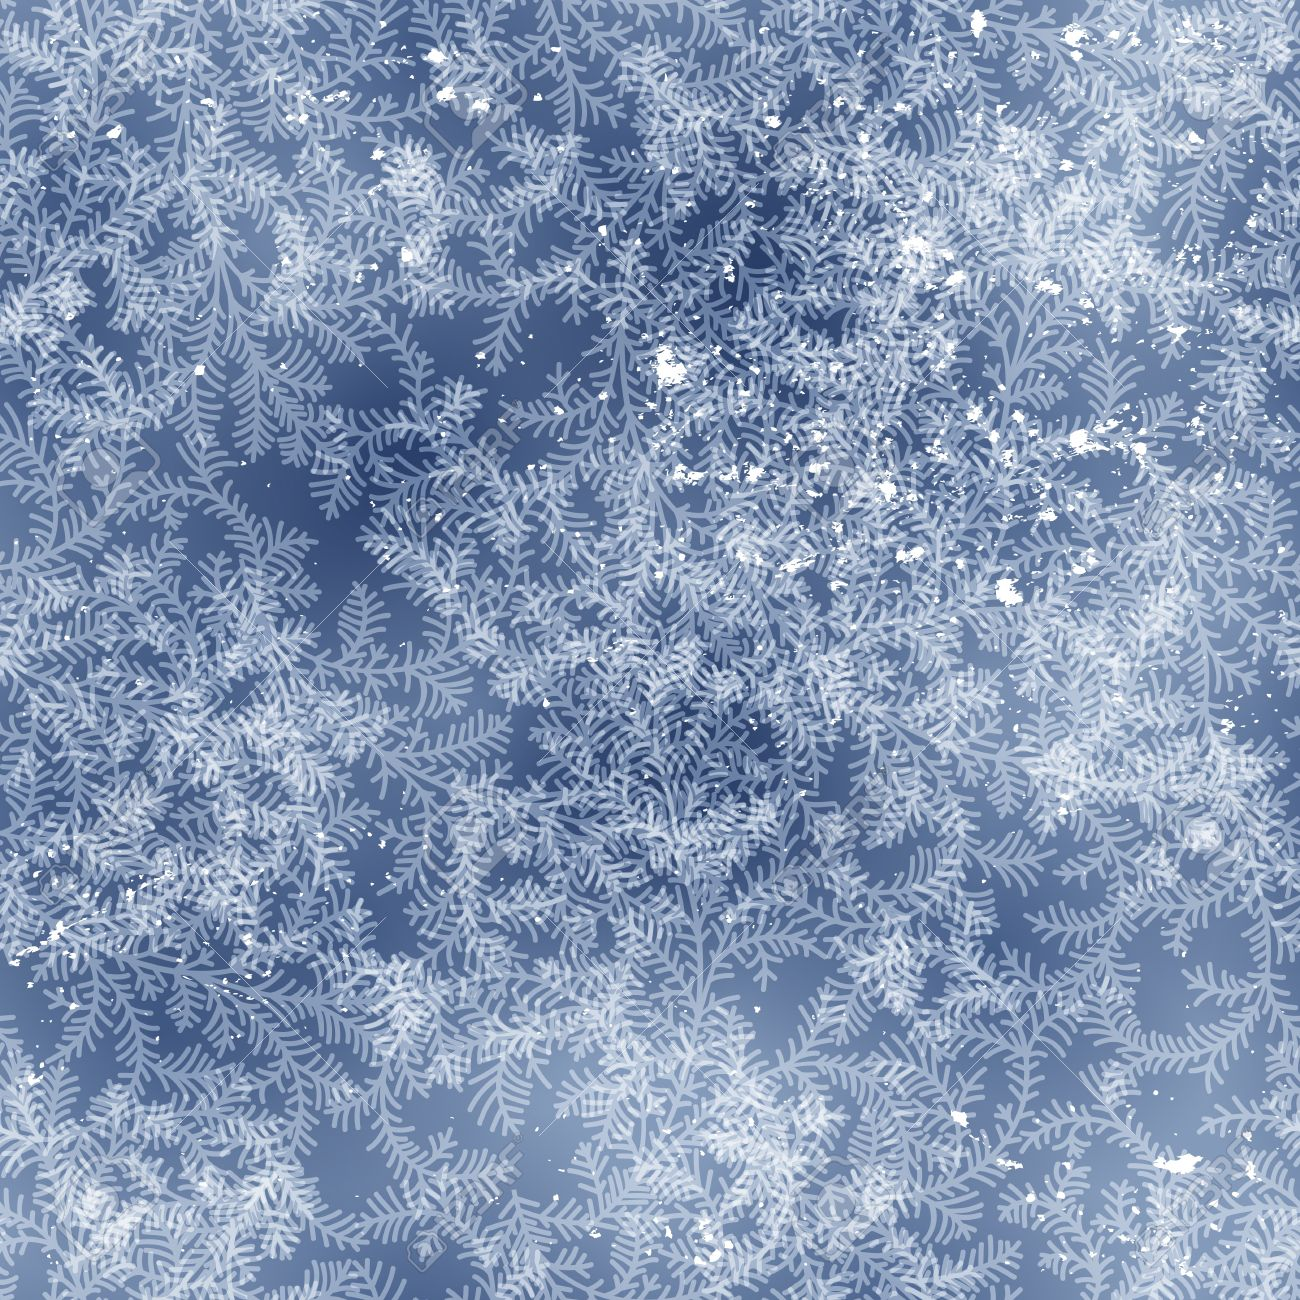 Frosted Glass clipart #5, Download drawings